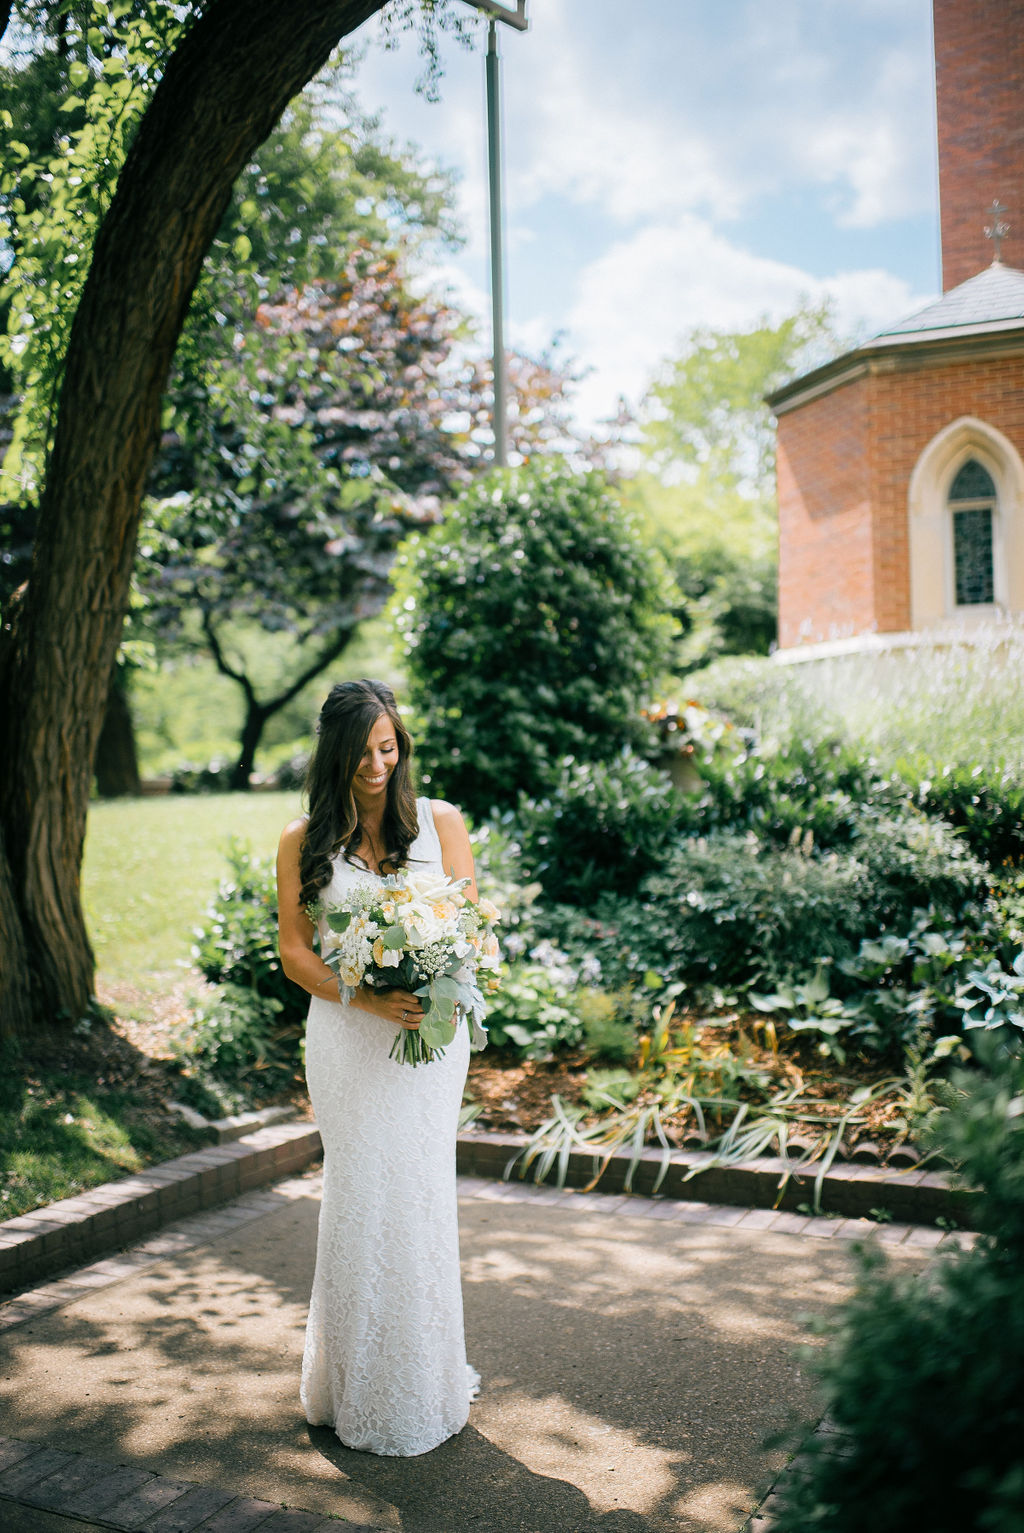 Bridal portrait captured at intimate Nashville wedding